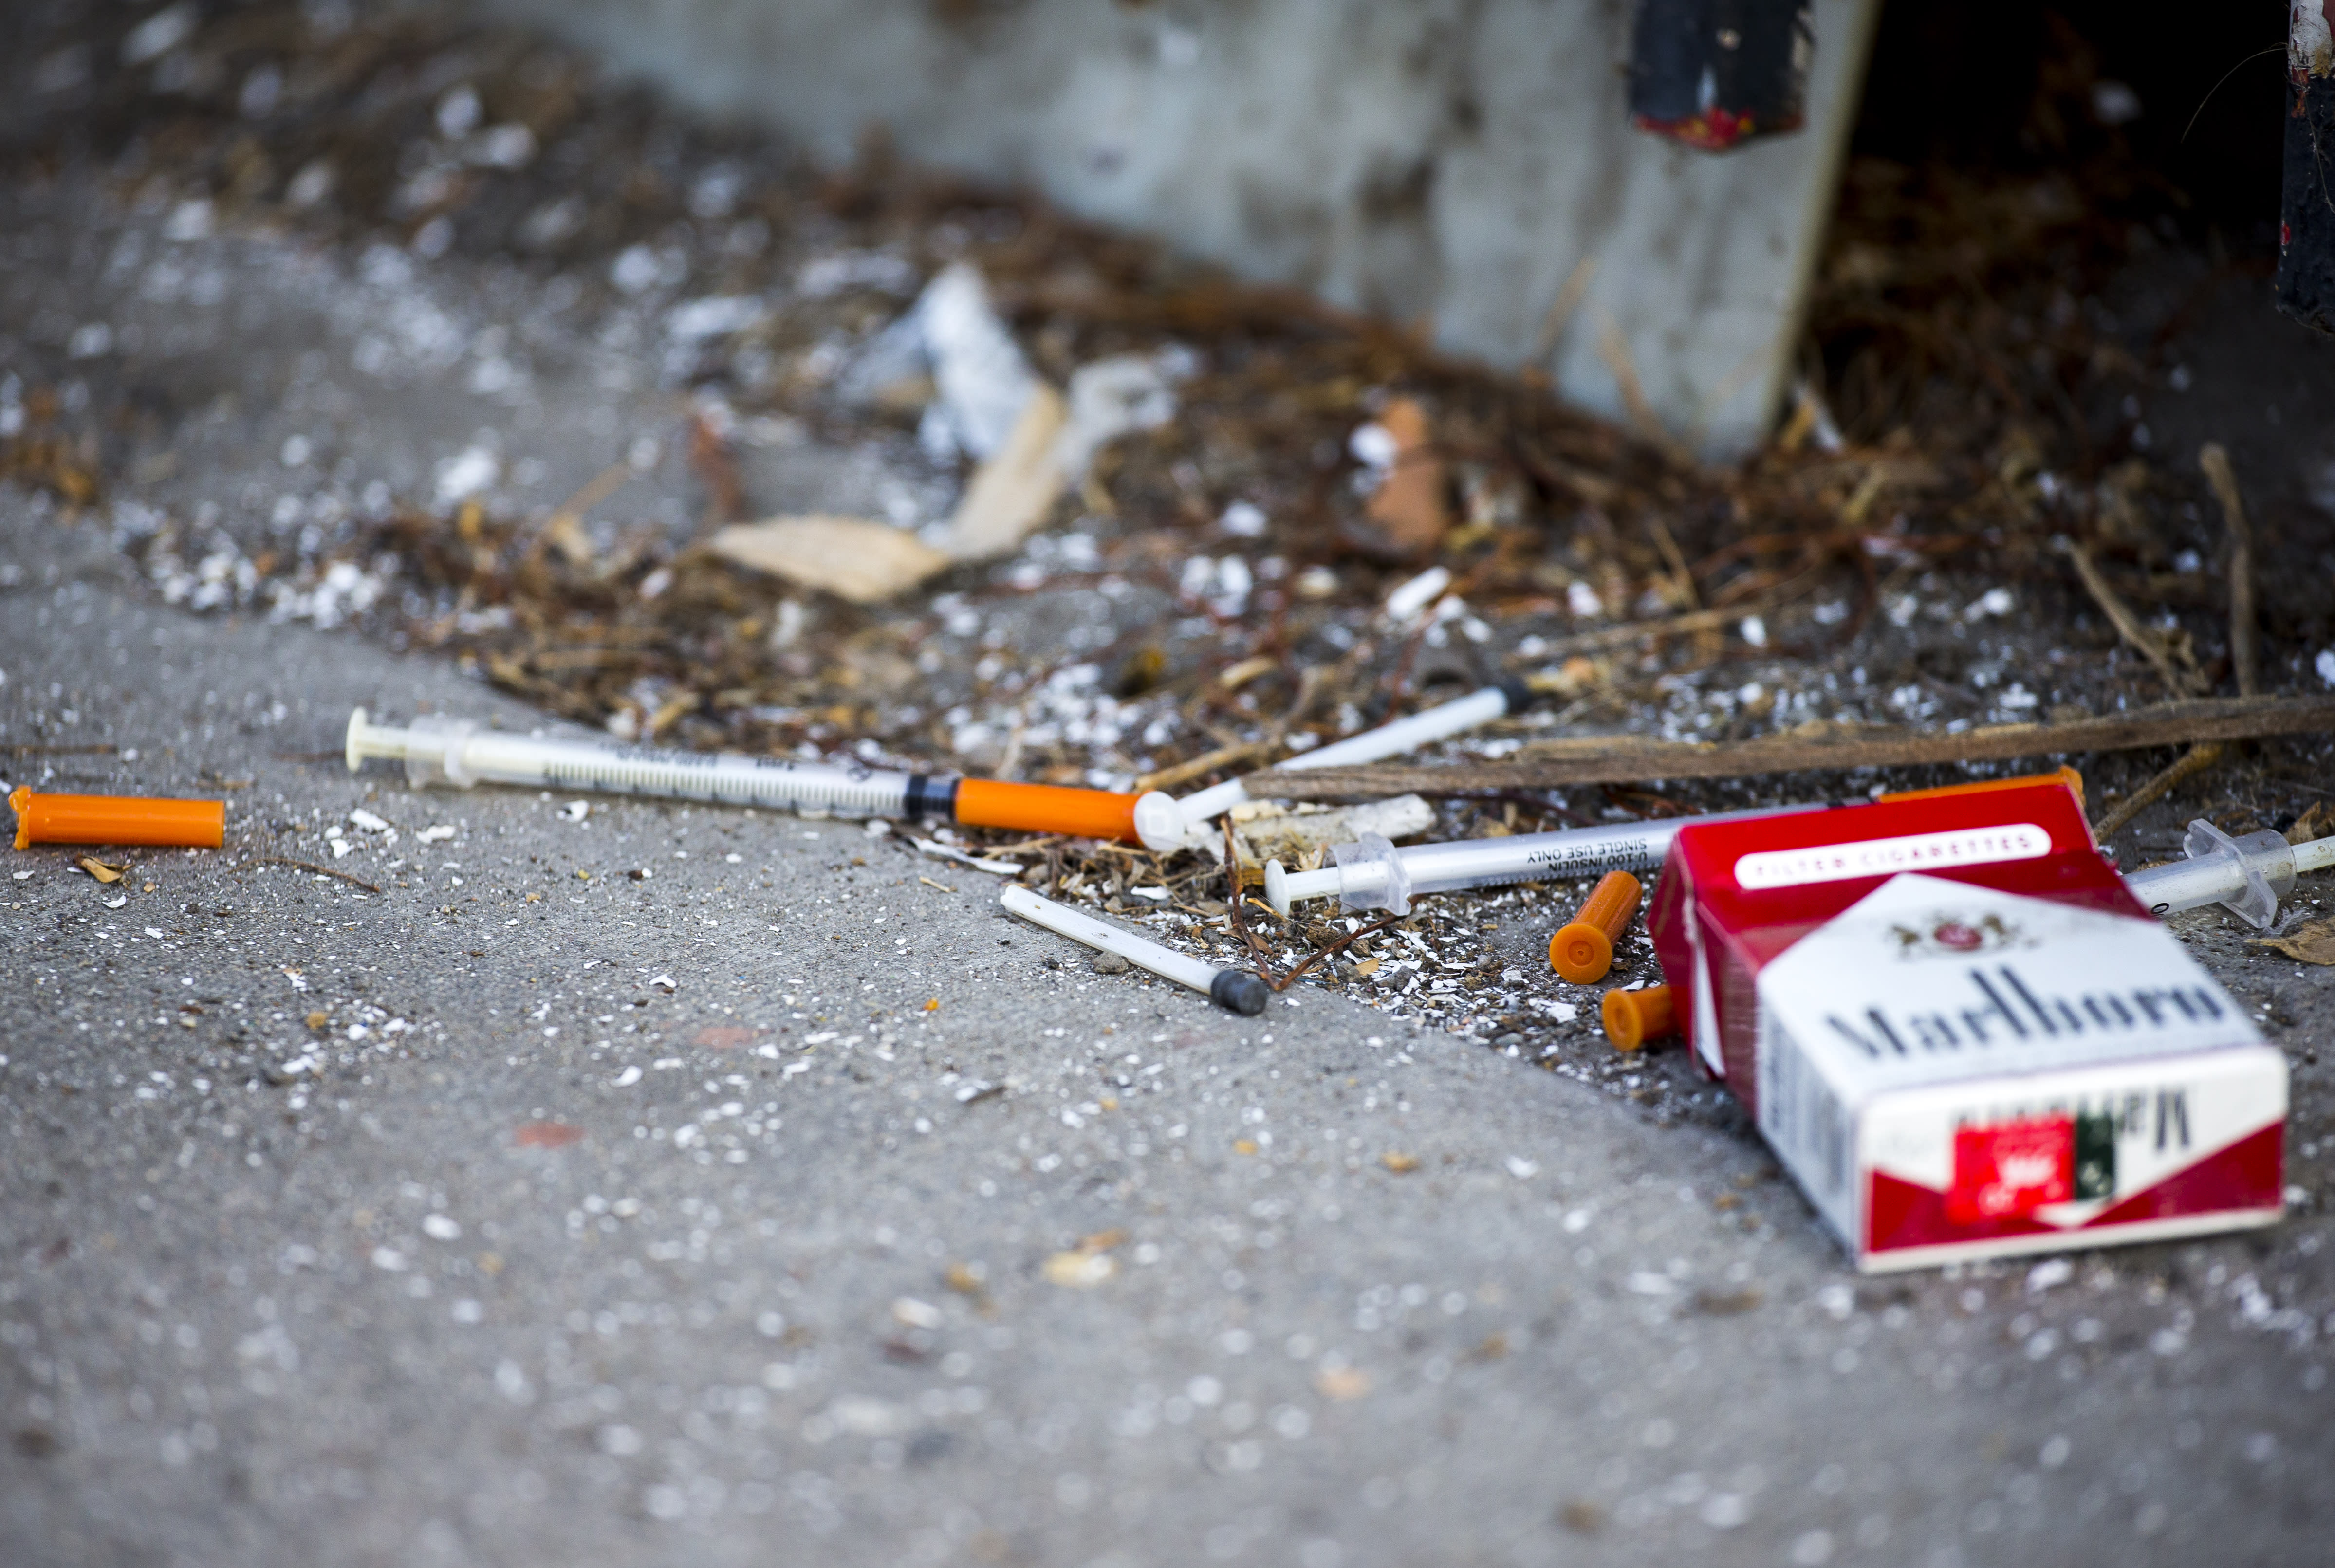 Drug Overdose Deaths Have Fallen Over the Last Year, Data Shows